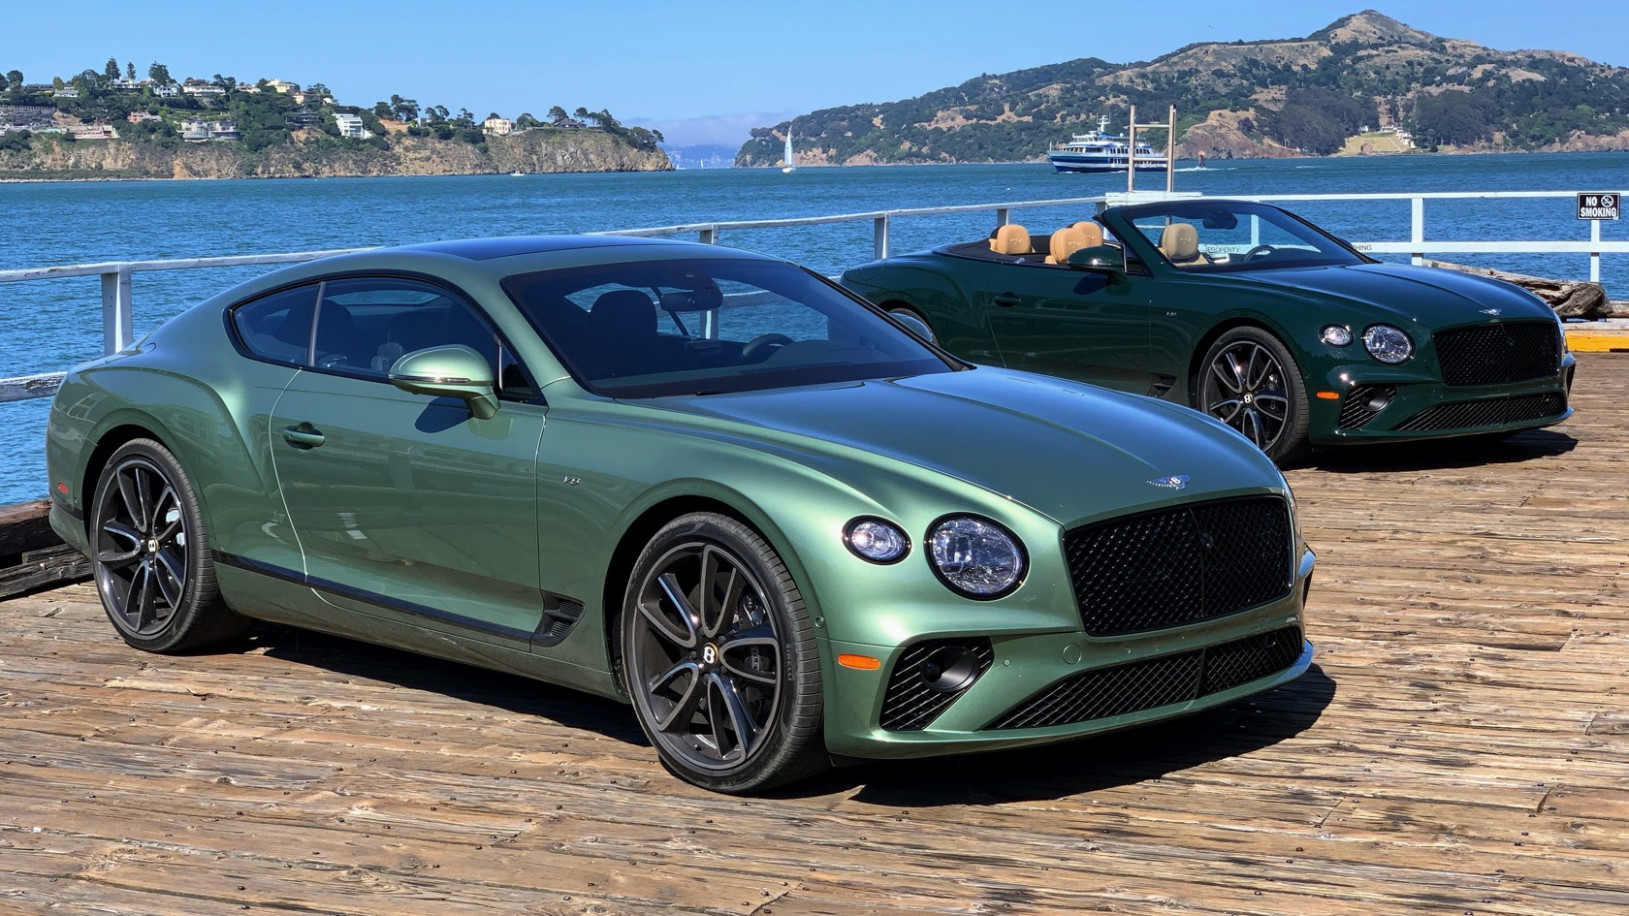 10 Bentley Continental GT V10 First Drive Review: When compromise ...